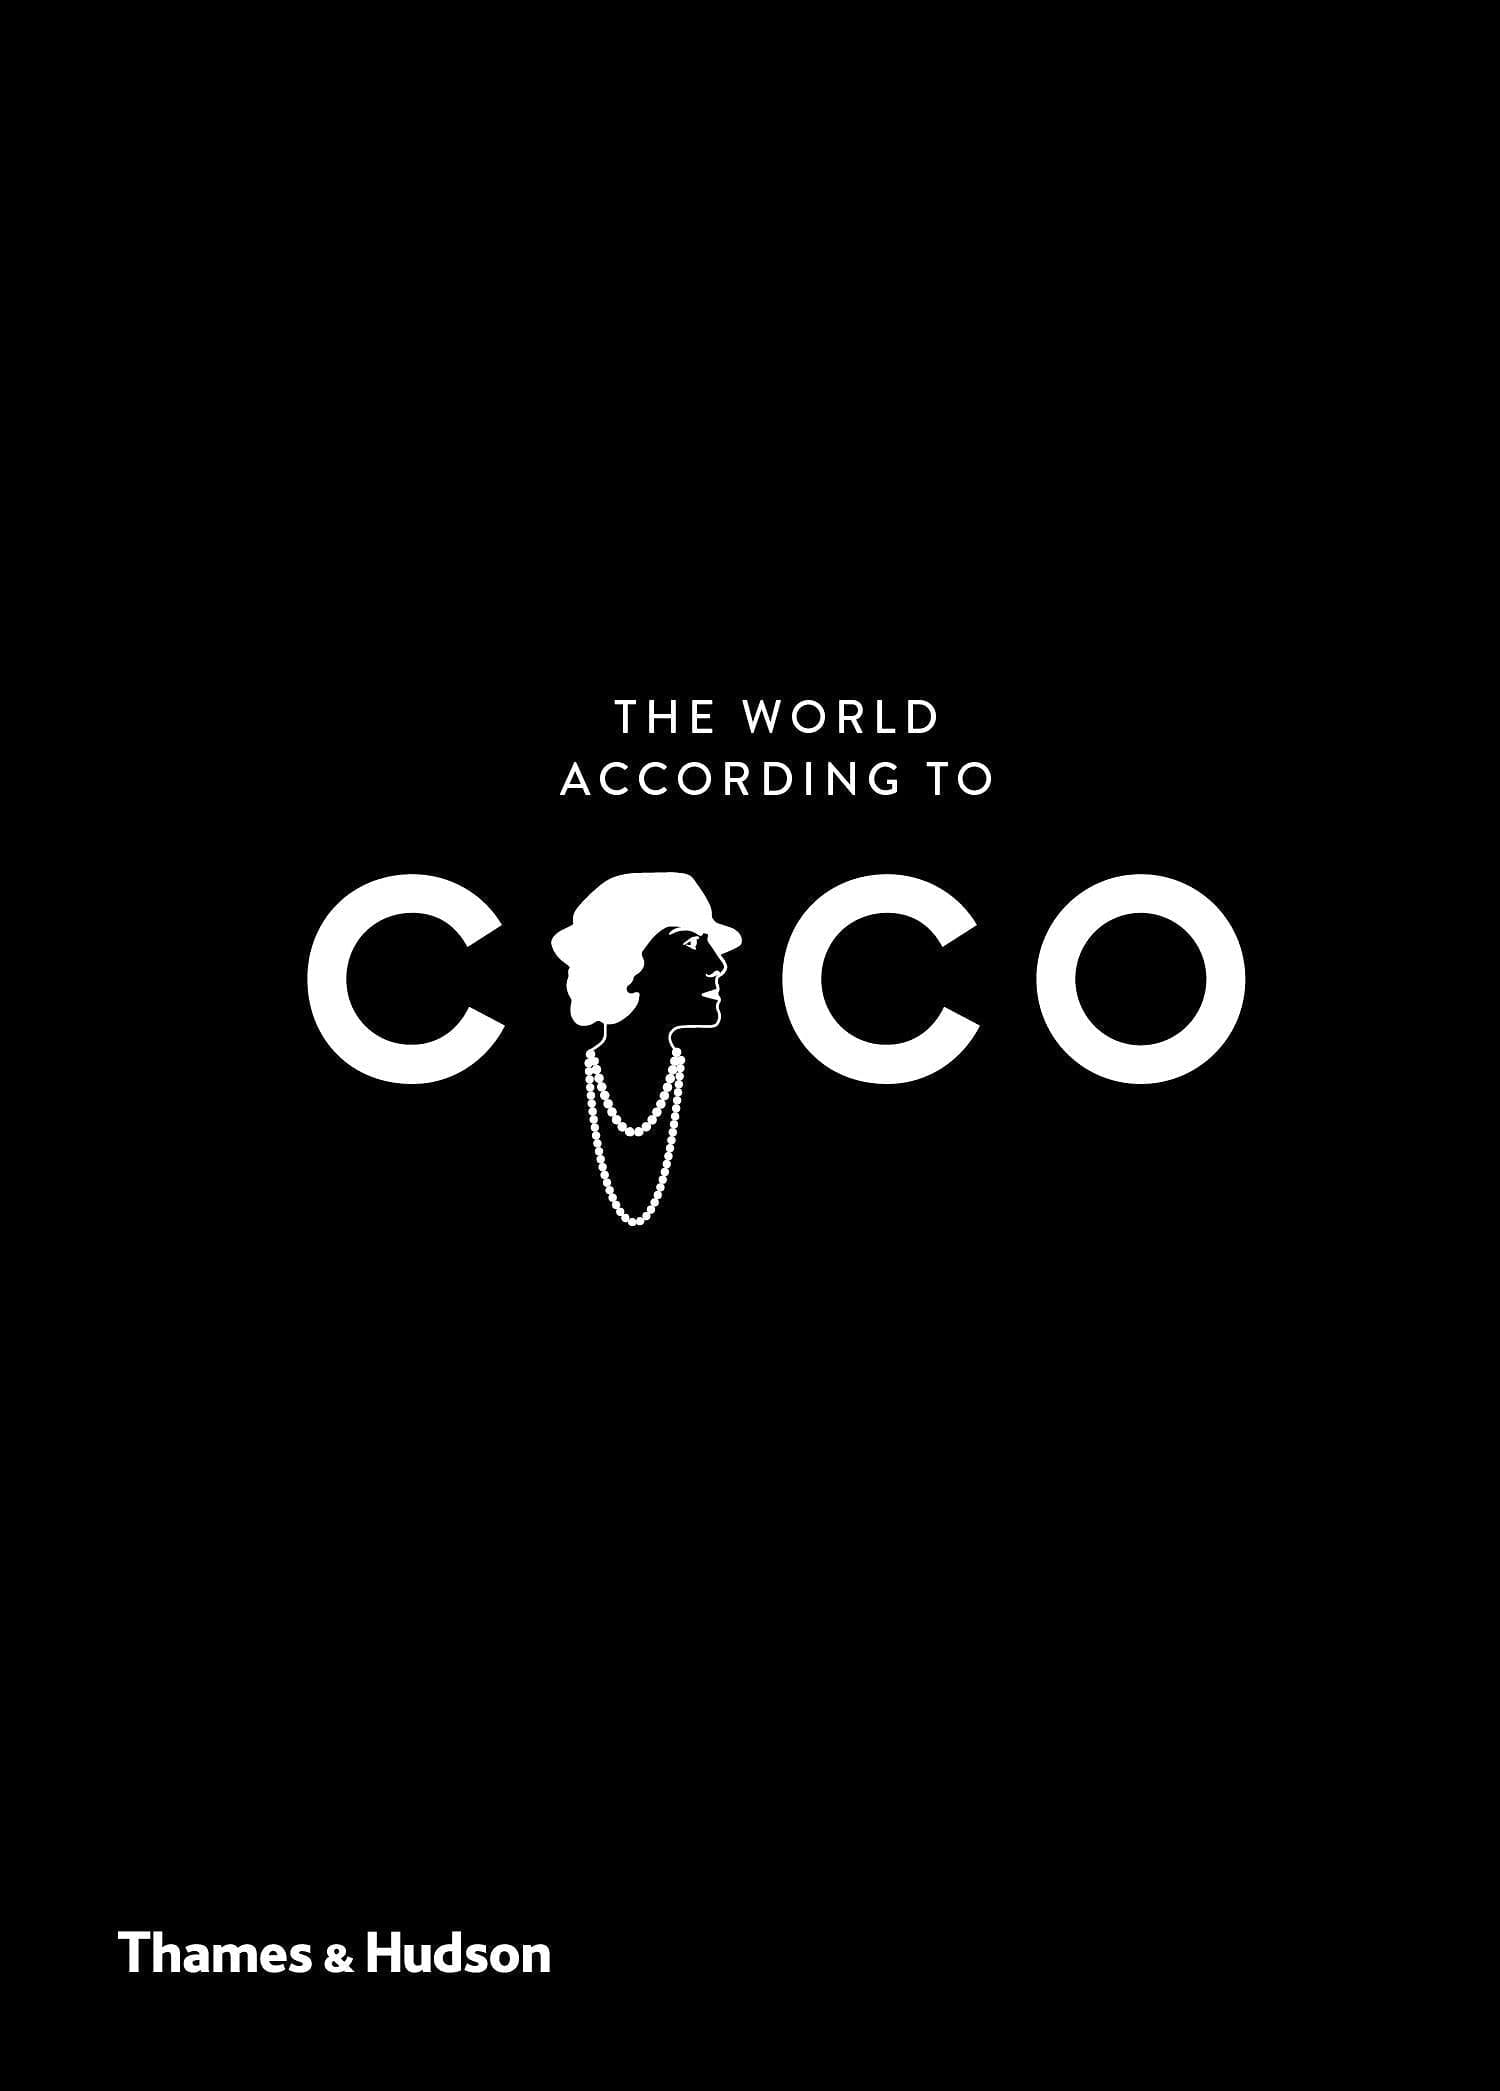 The World According To Coco